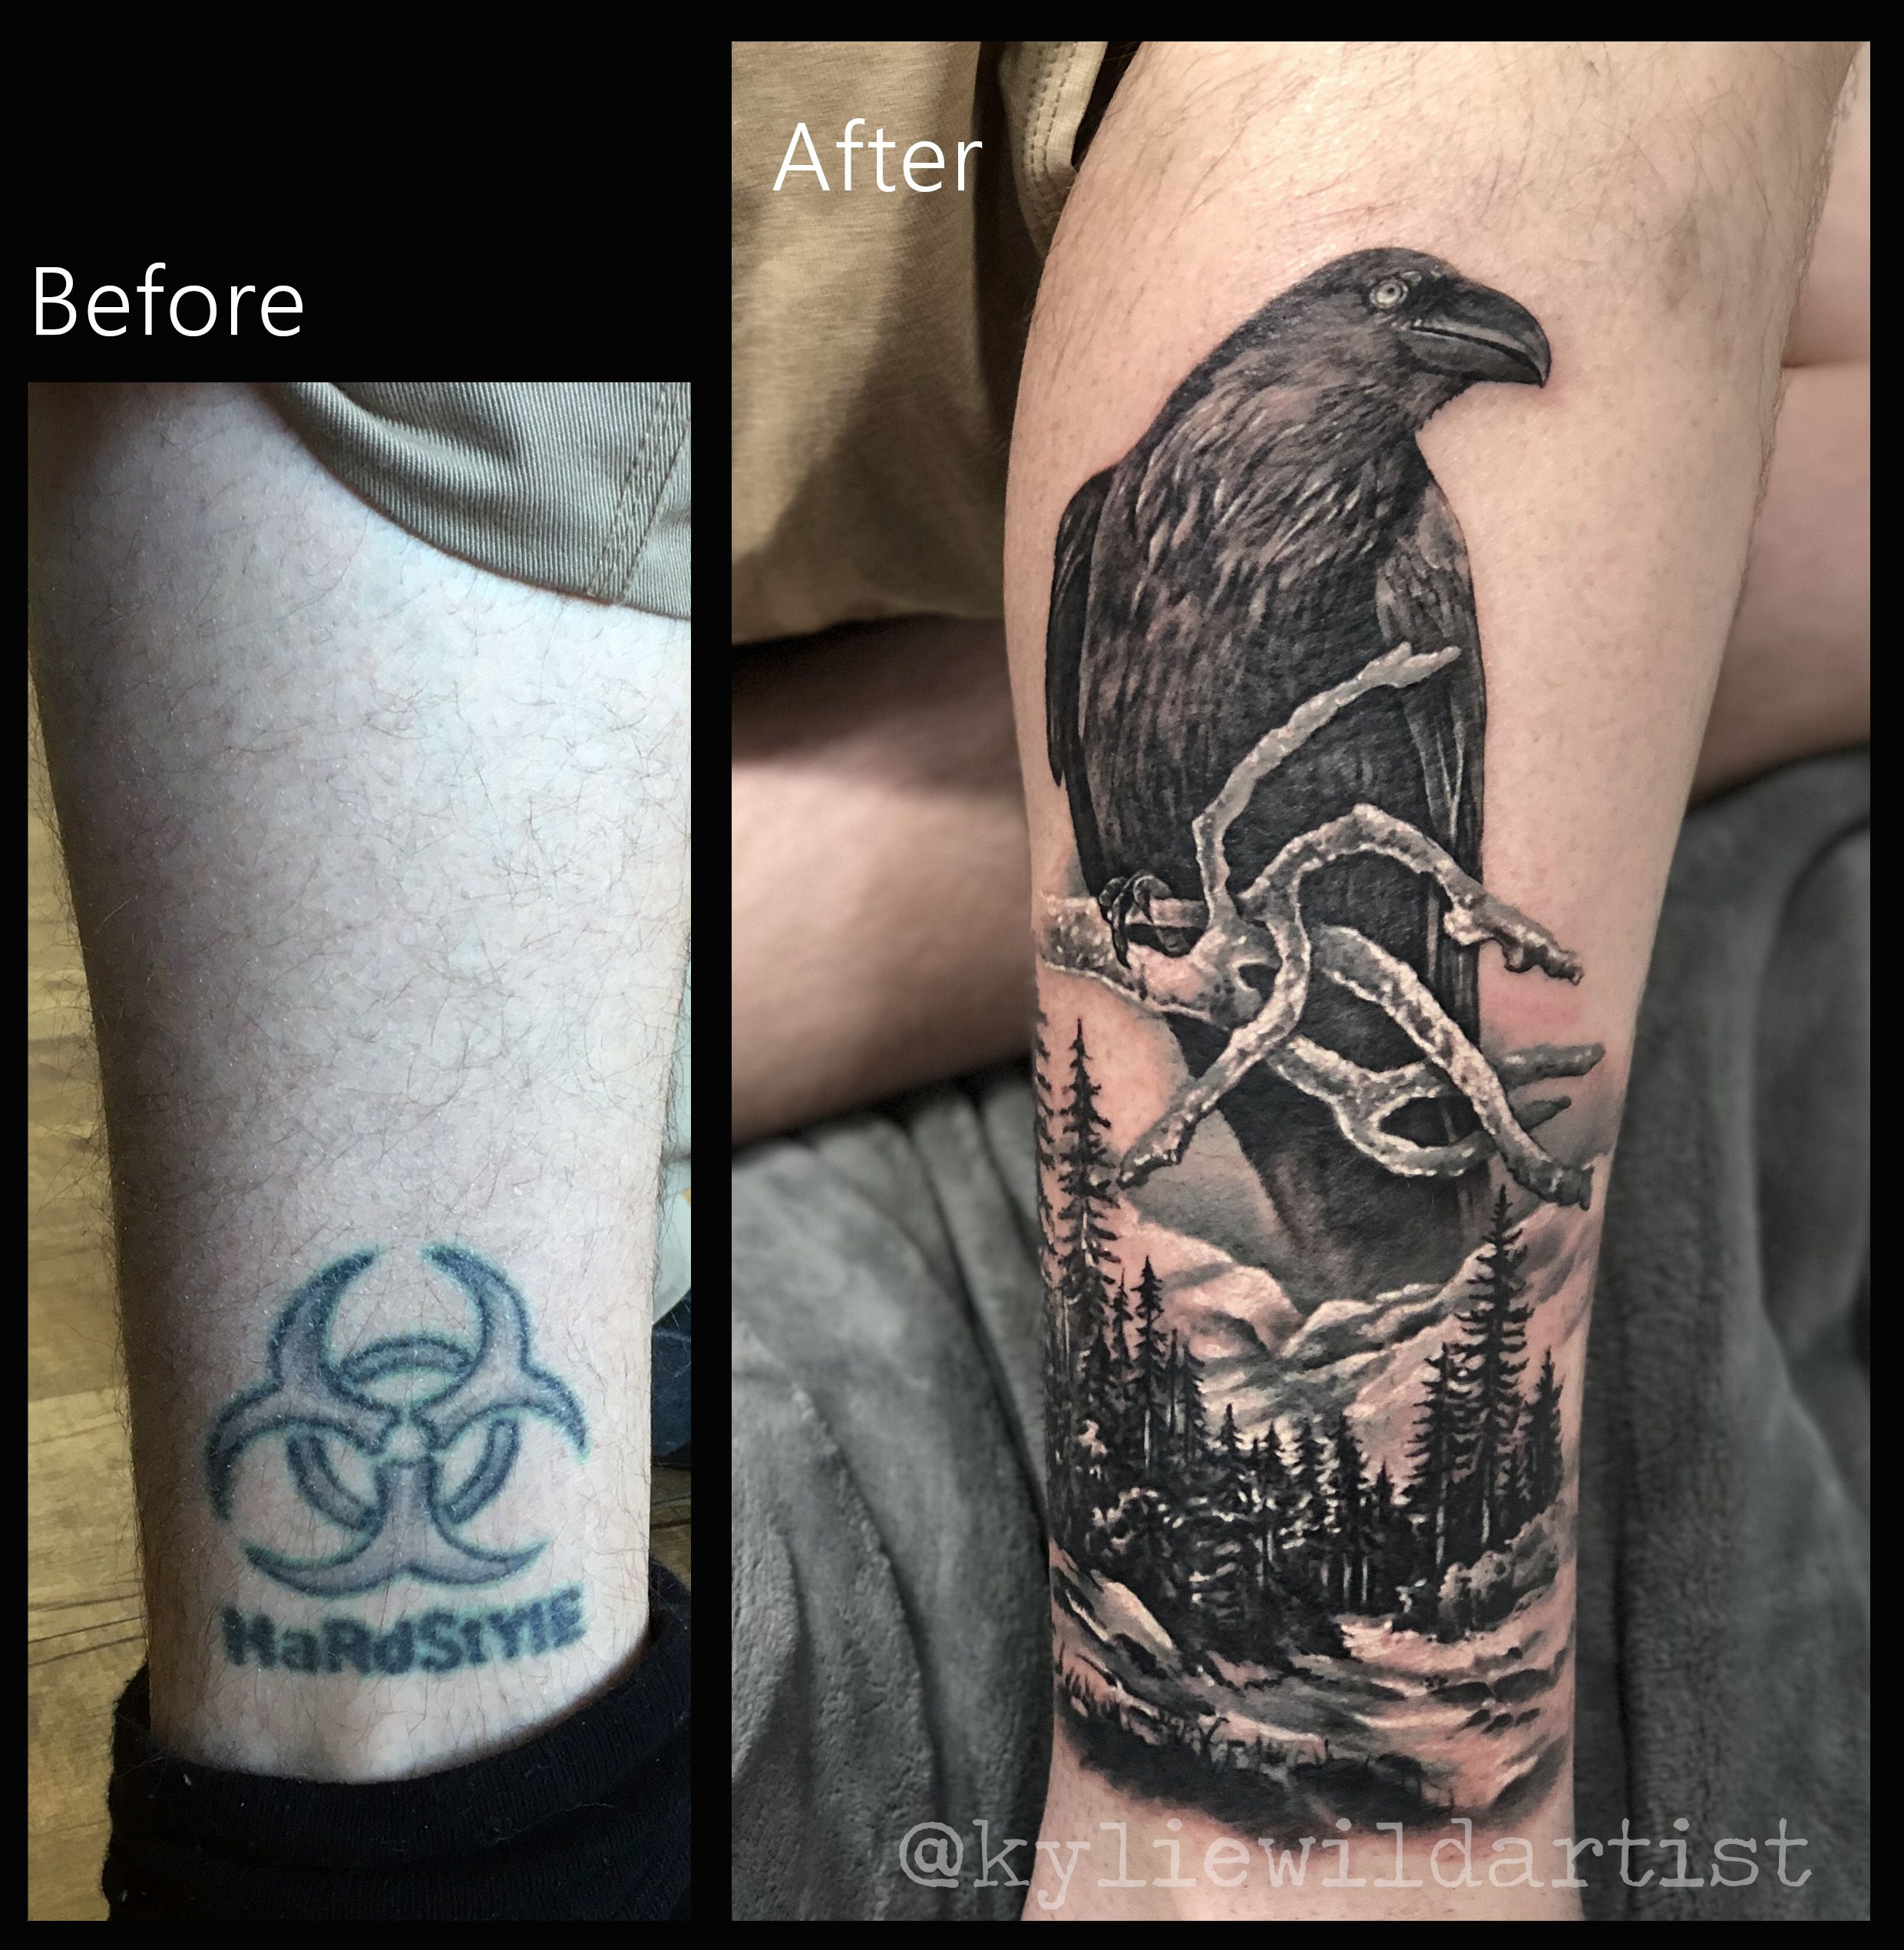 Ankle Tattoo Cover Raven Snow And Mountains Landscape Pine Trees Forest Realistic